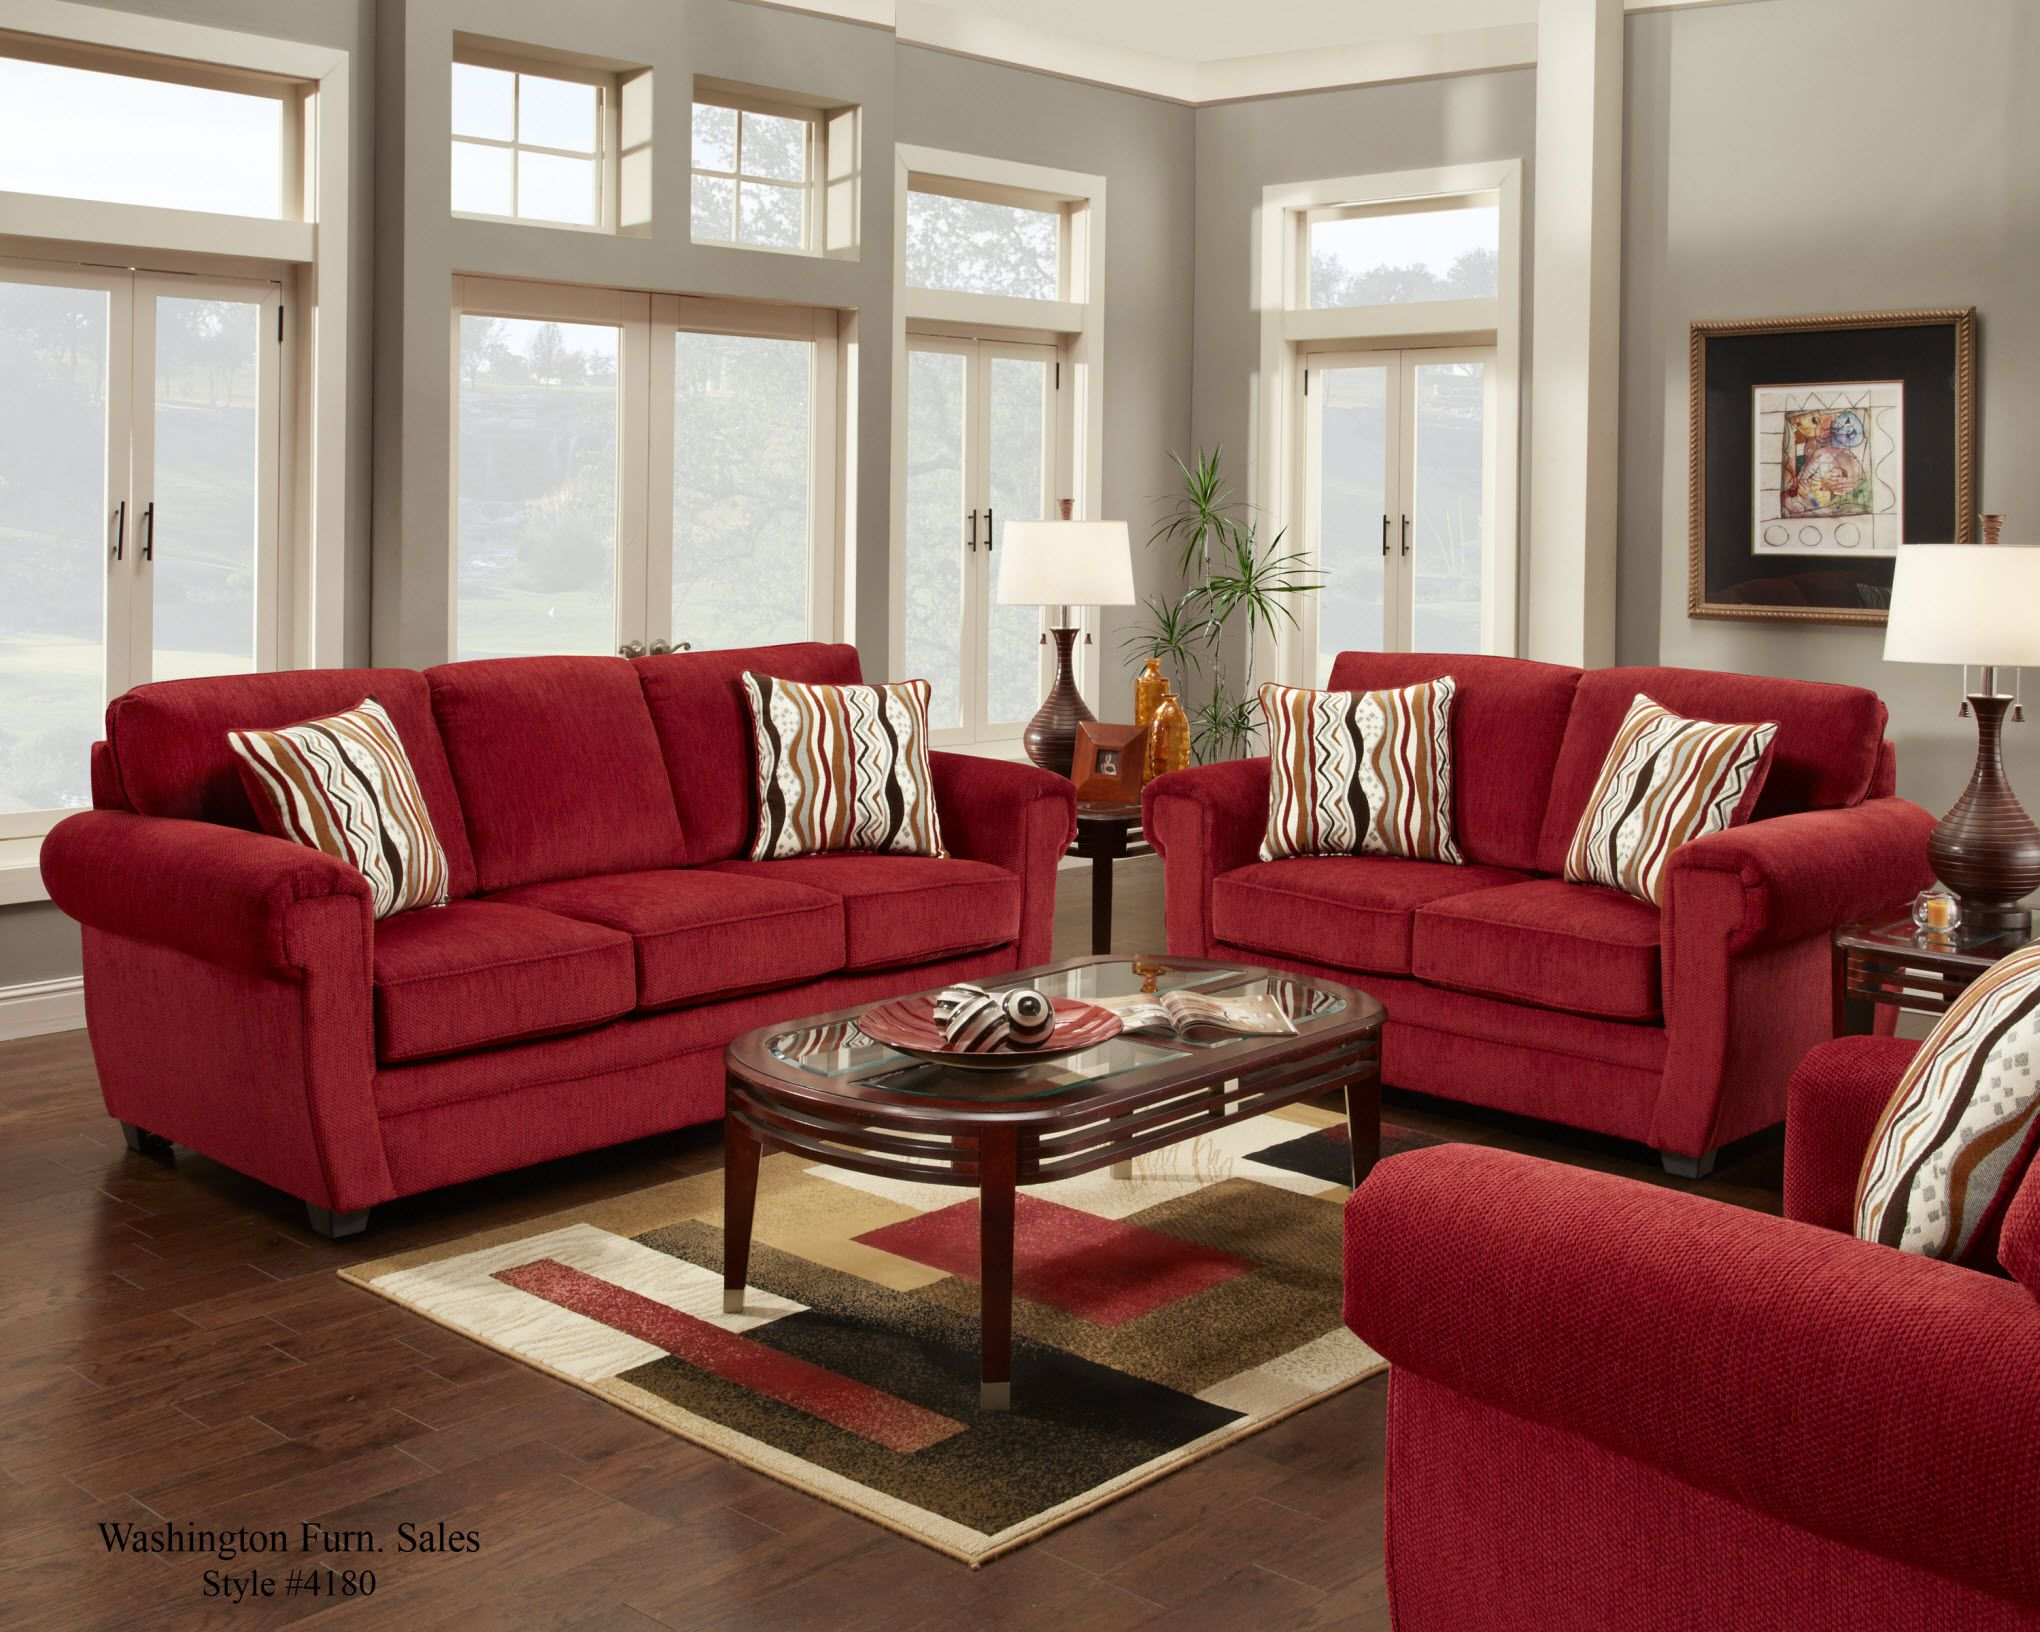 4180 washington samson red sofa and loveseat www for Gray red living room ideas